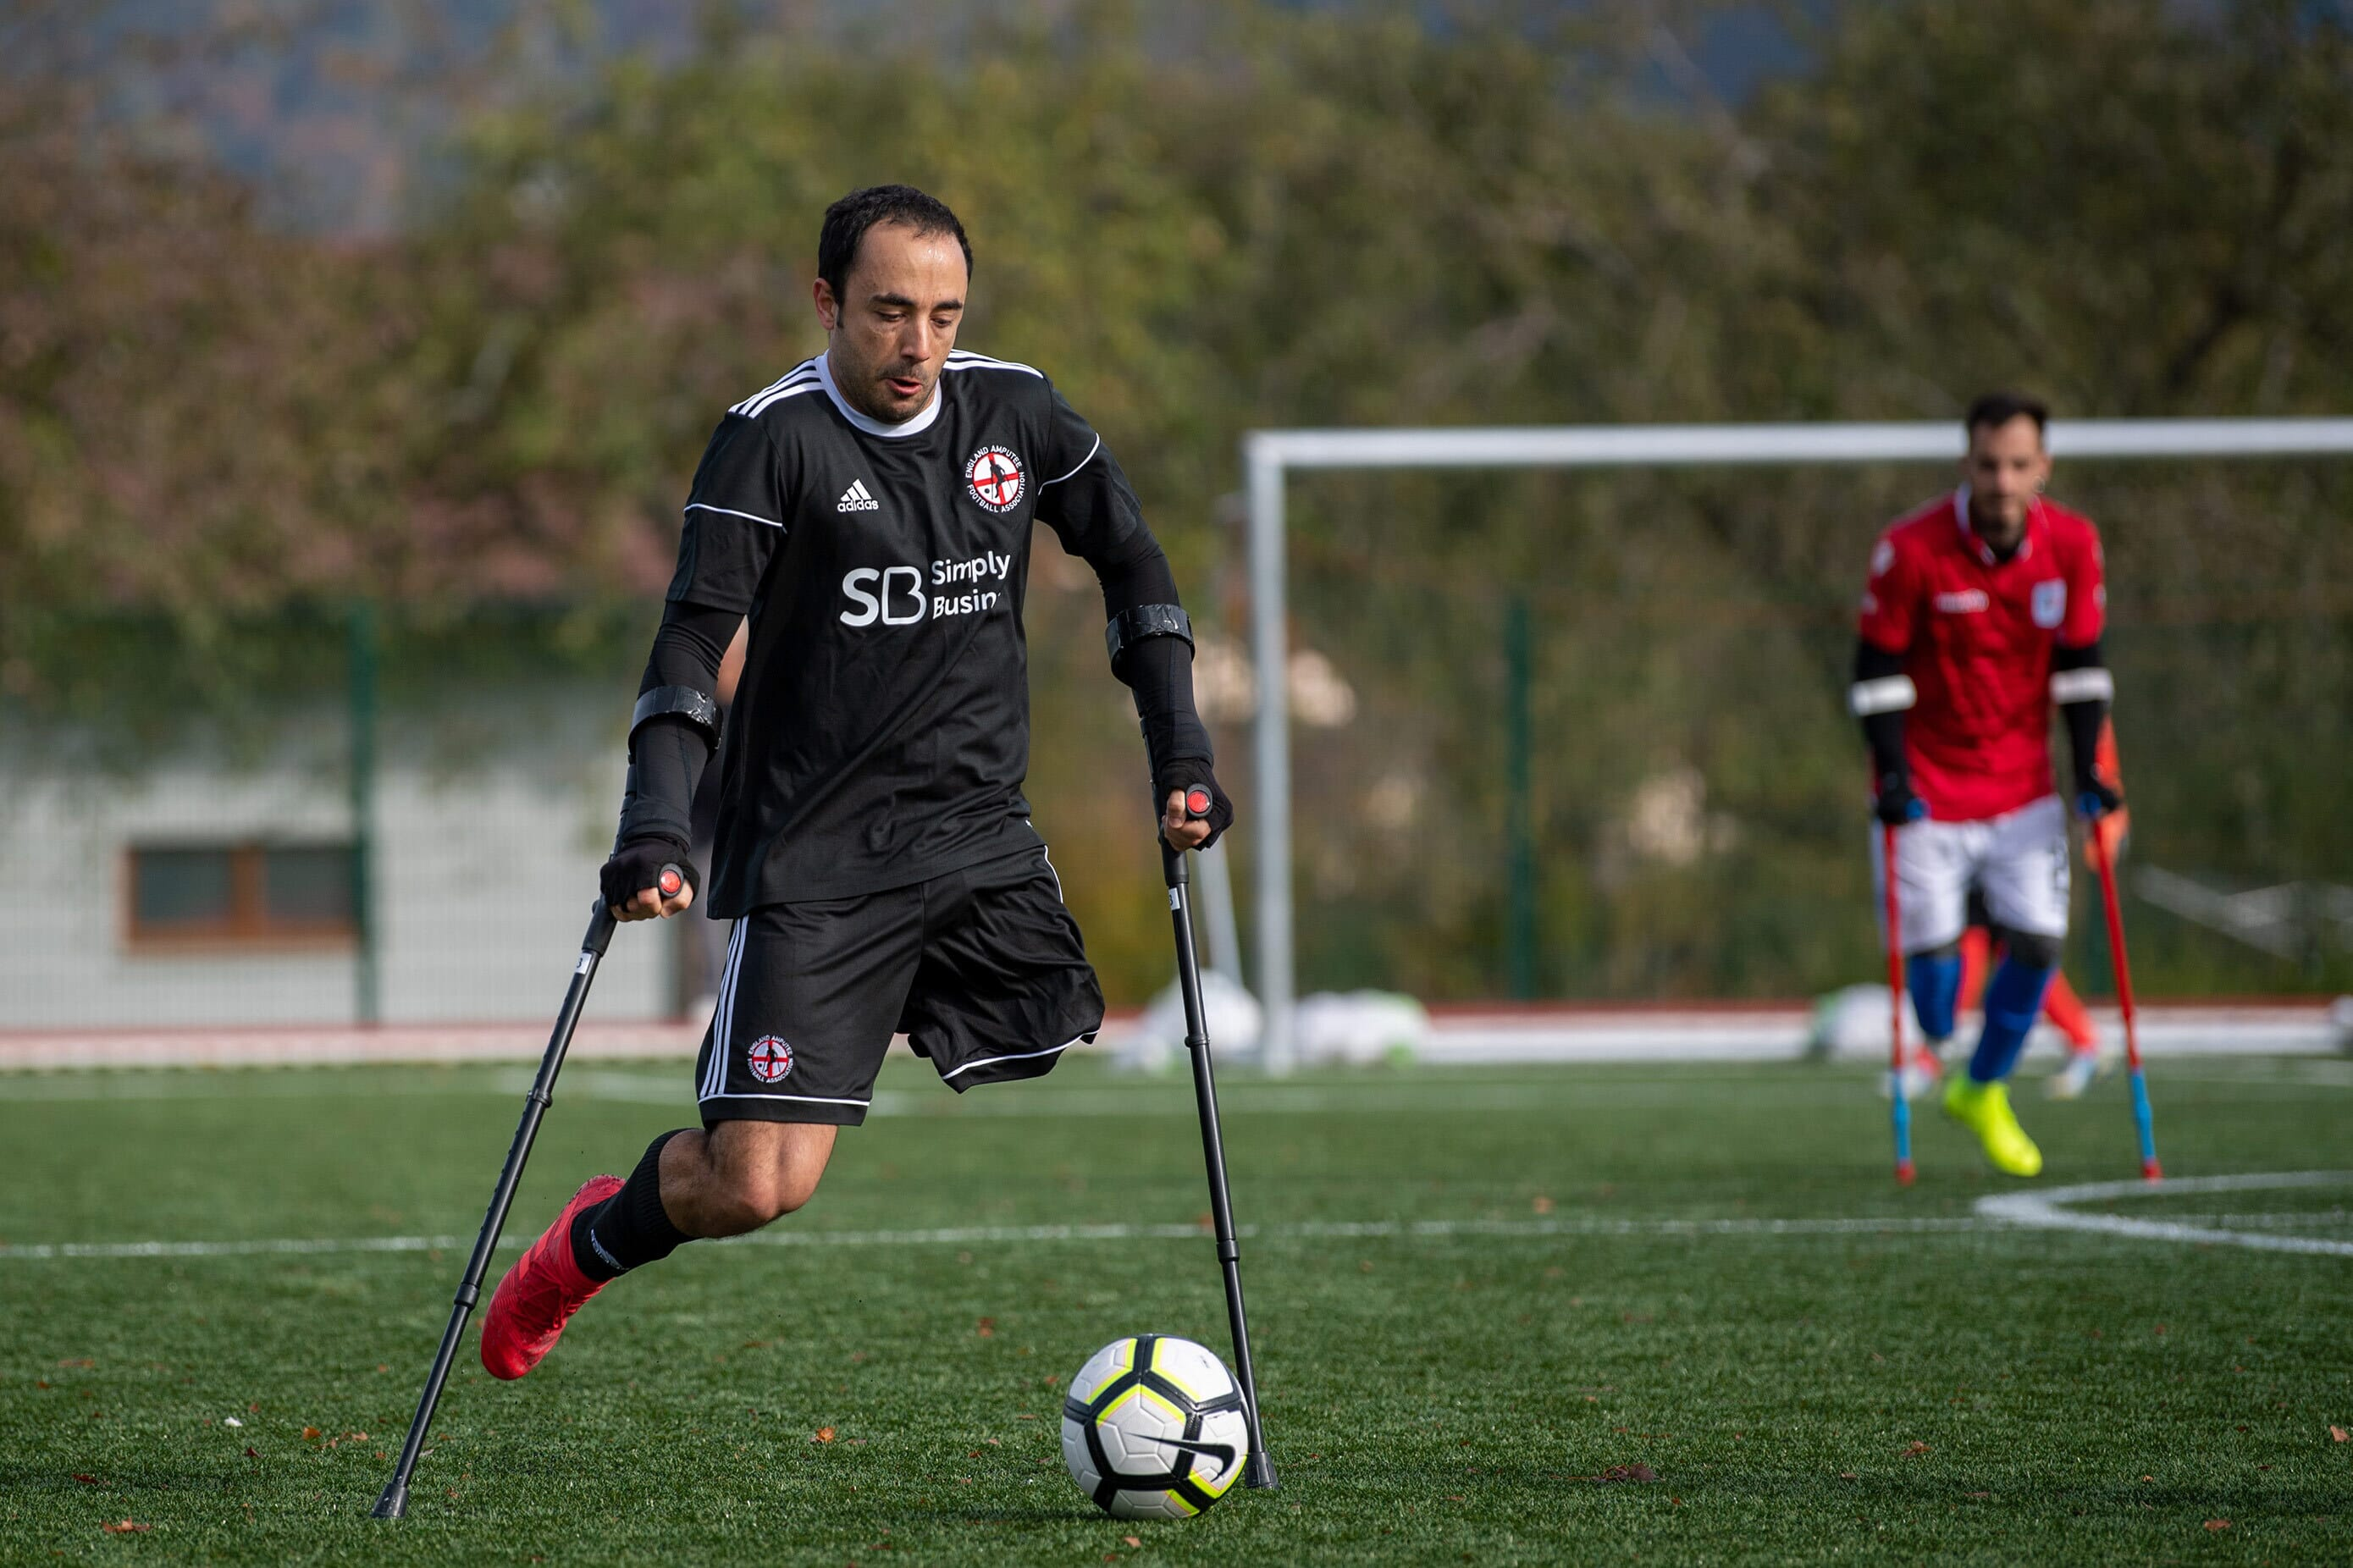 man on crutches with one leg moving to kick the football